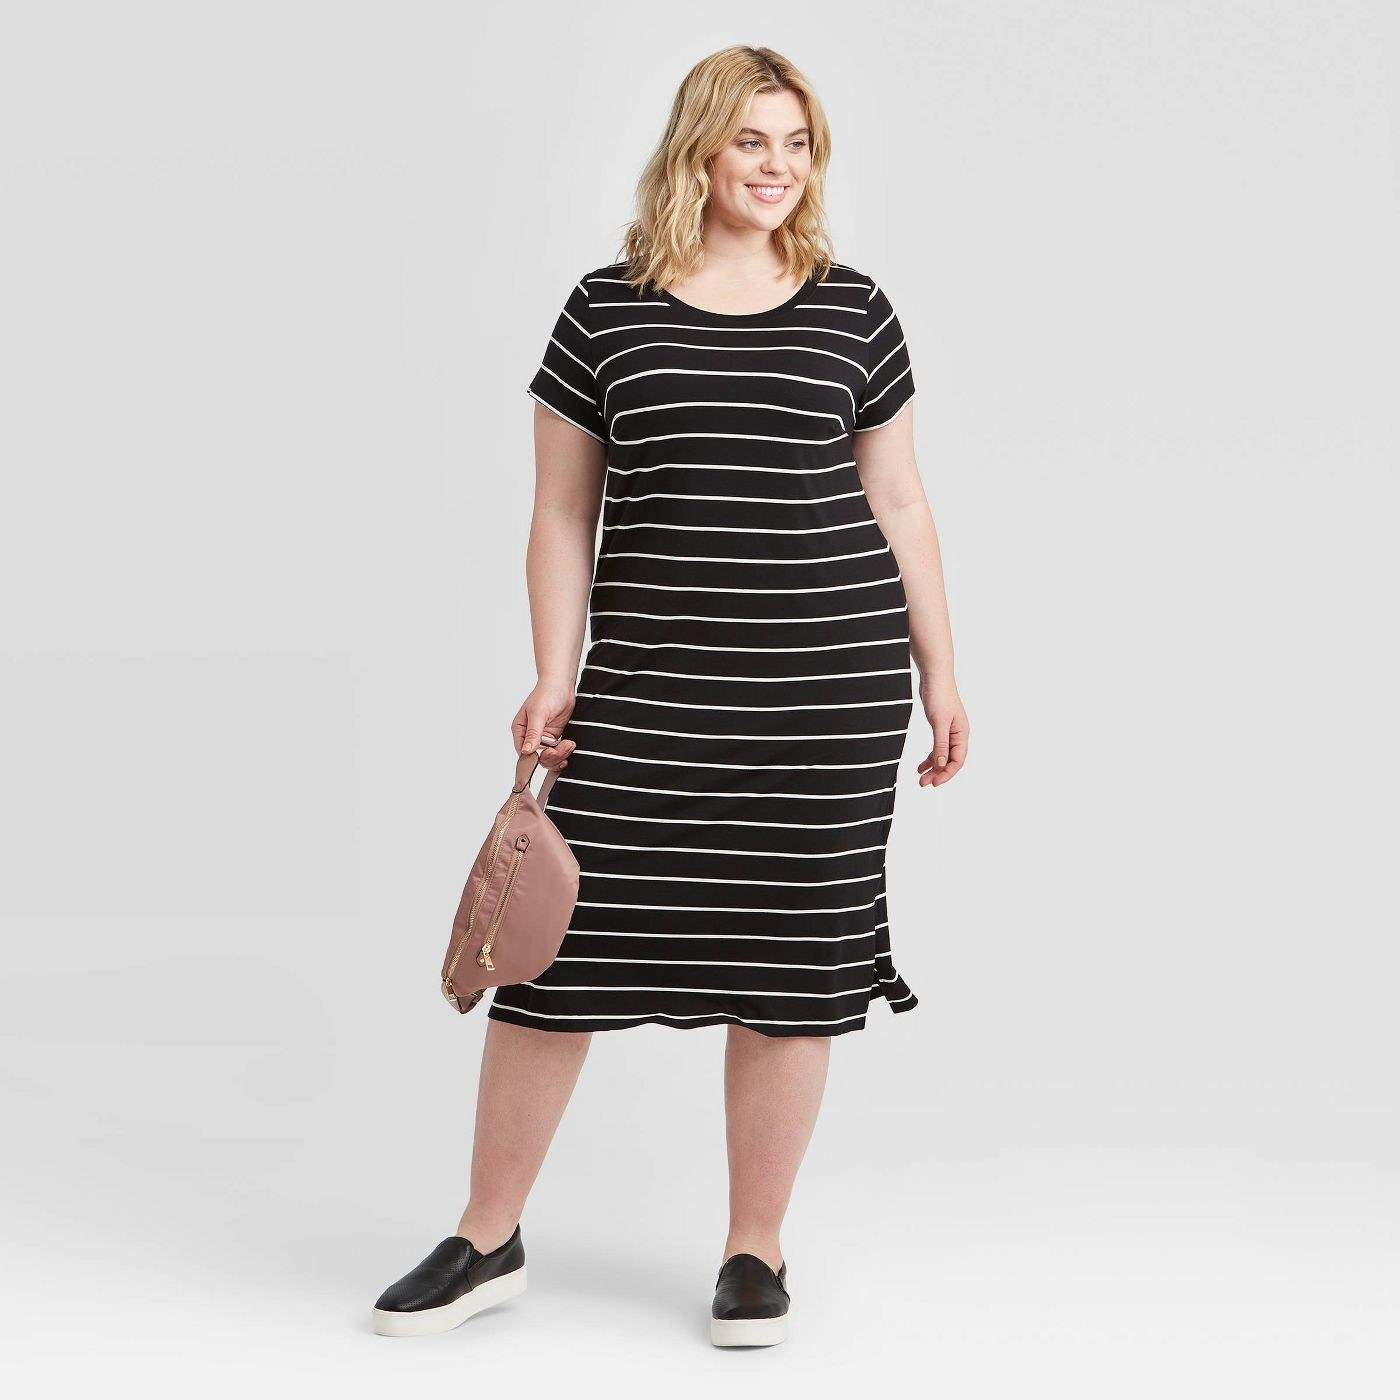 A black short-sleeved dress with thin white horizontal stripes